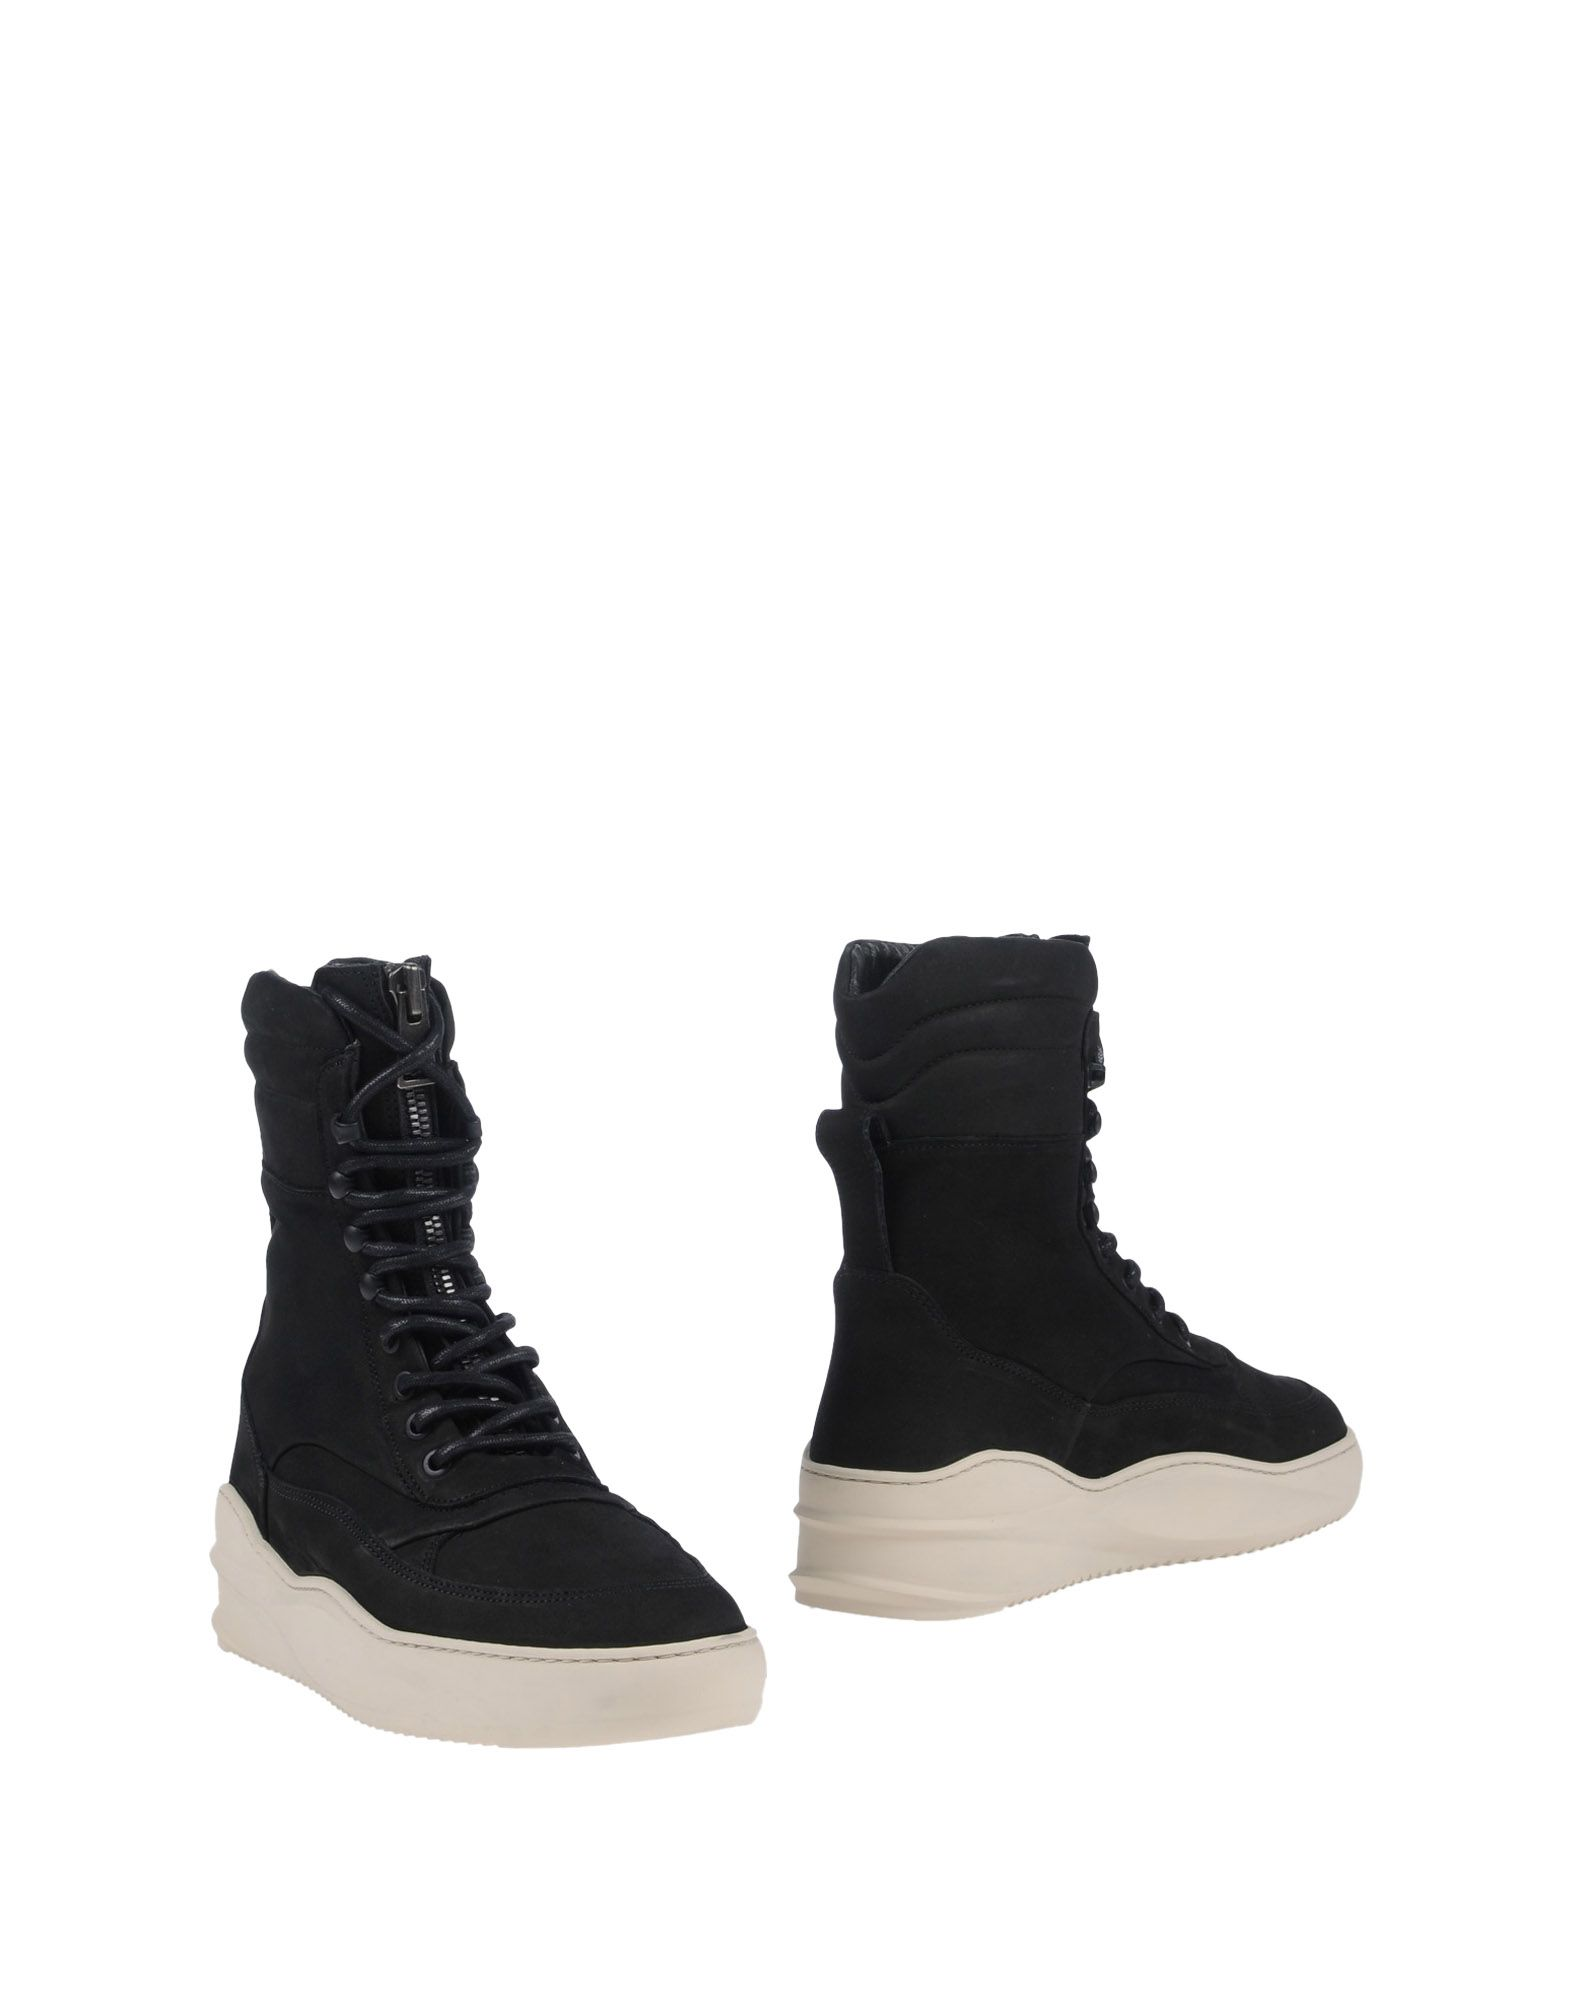 Stivaletti Filling Pieces Donna - Acquista online su